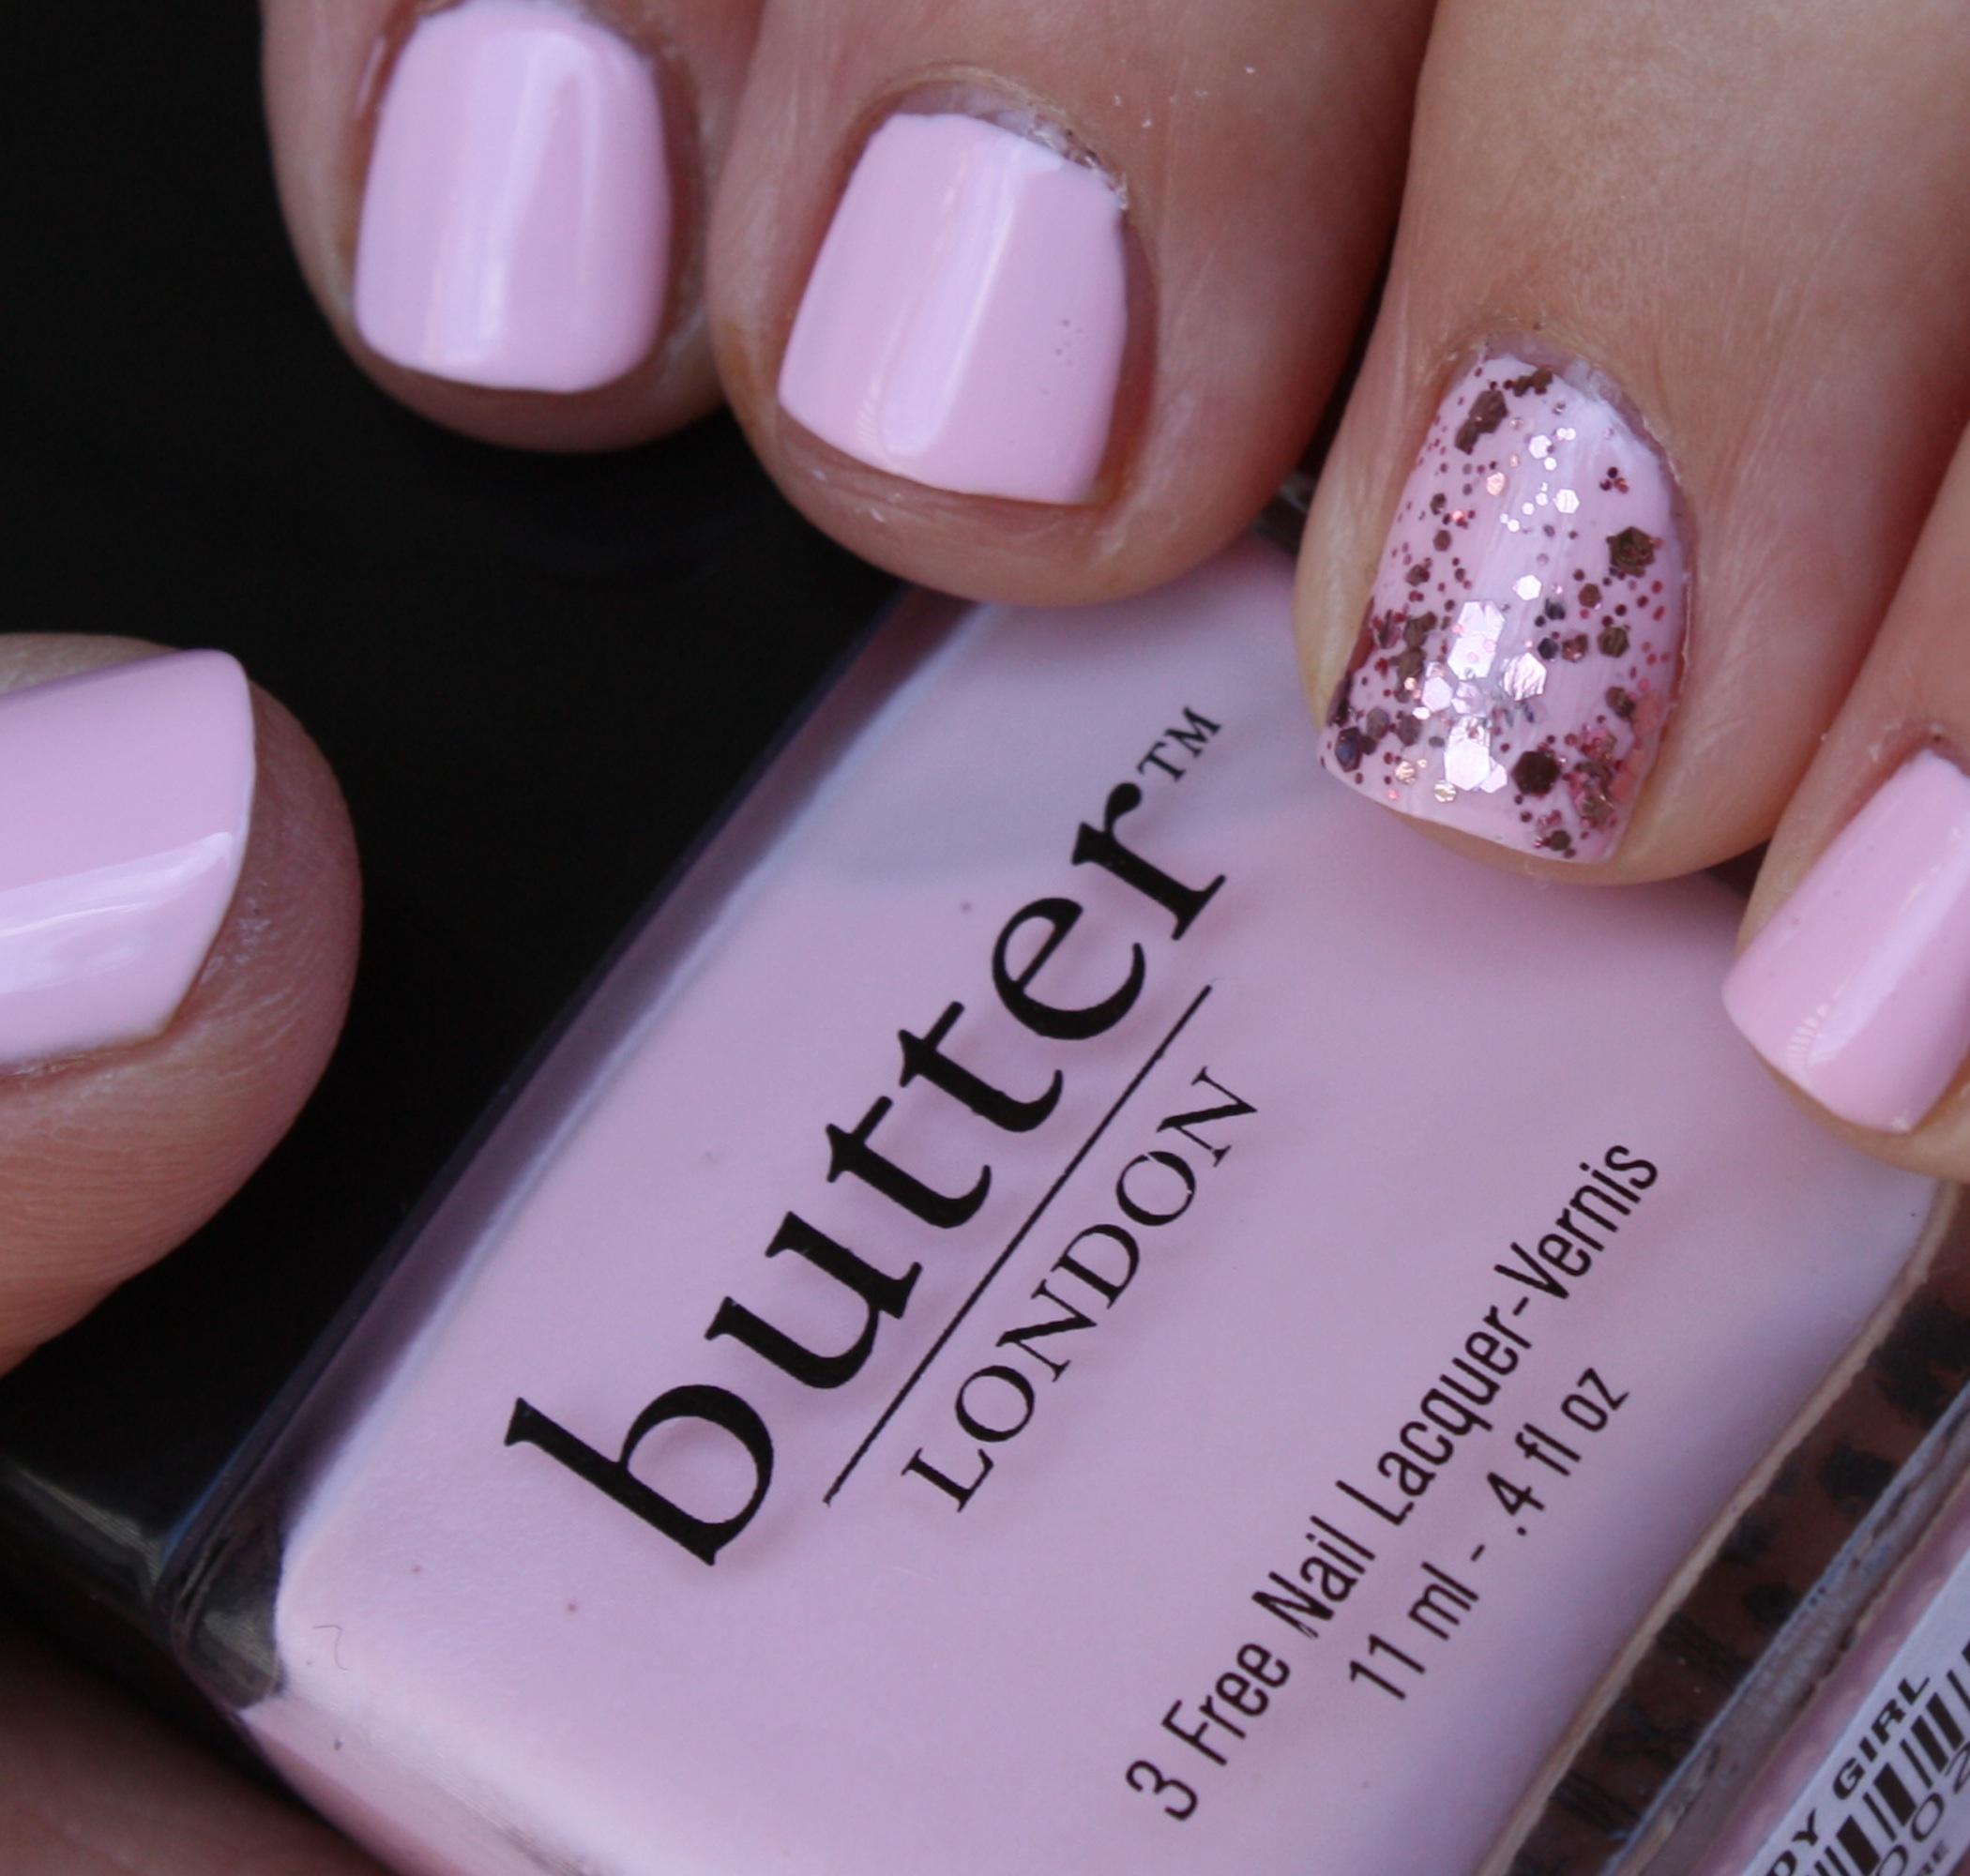 Butter London Teddy Girl and Essie A Cut Above – horrendous color